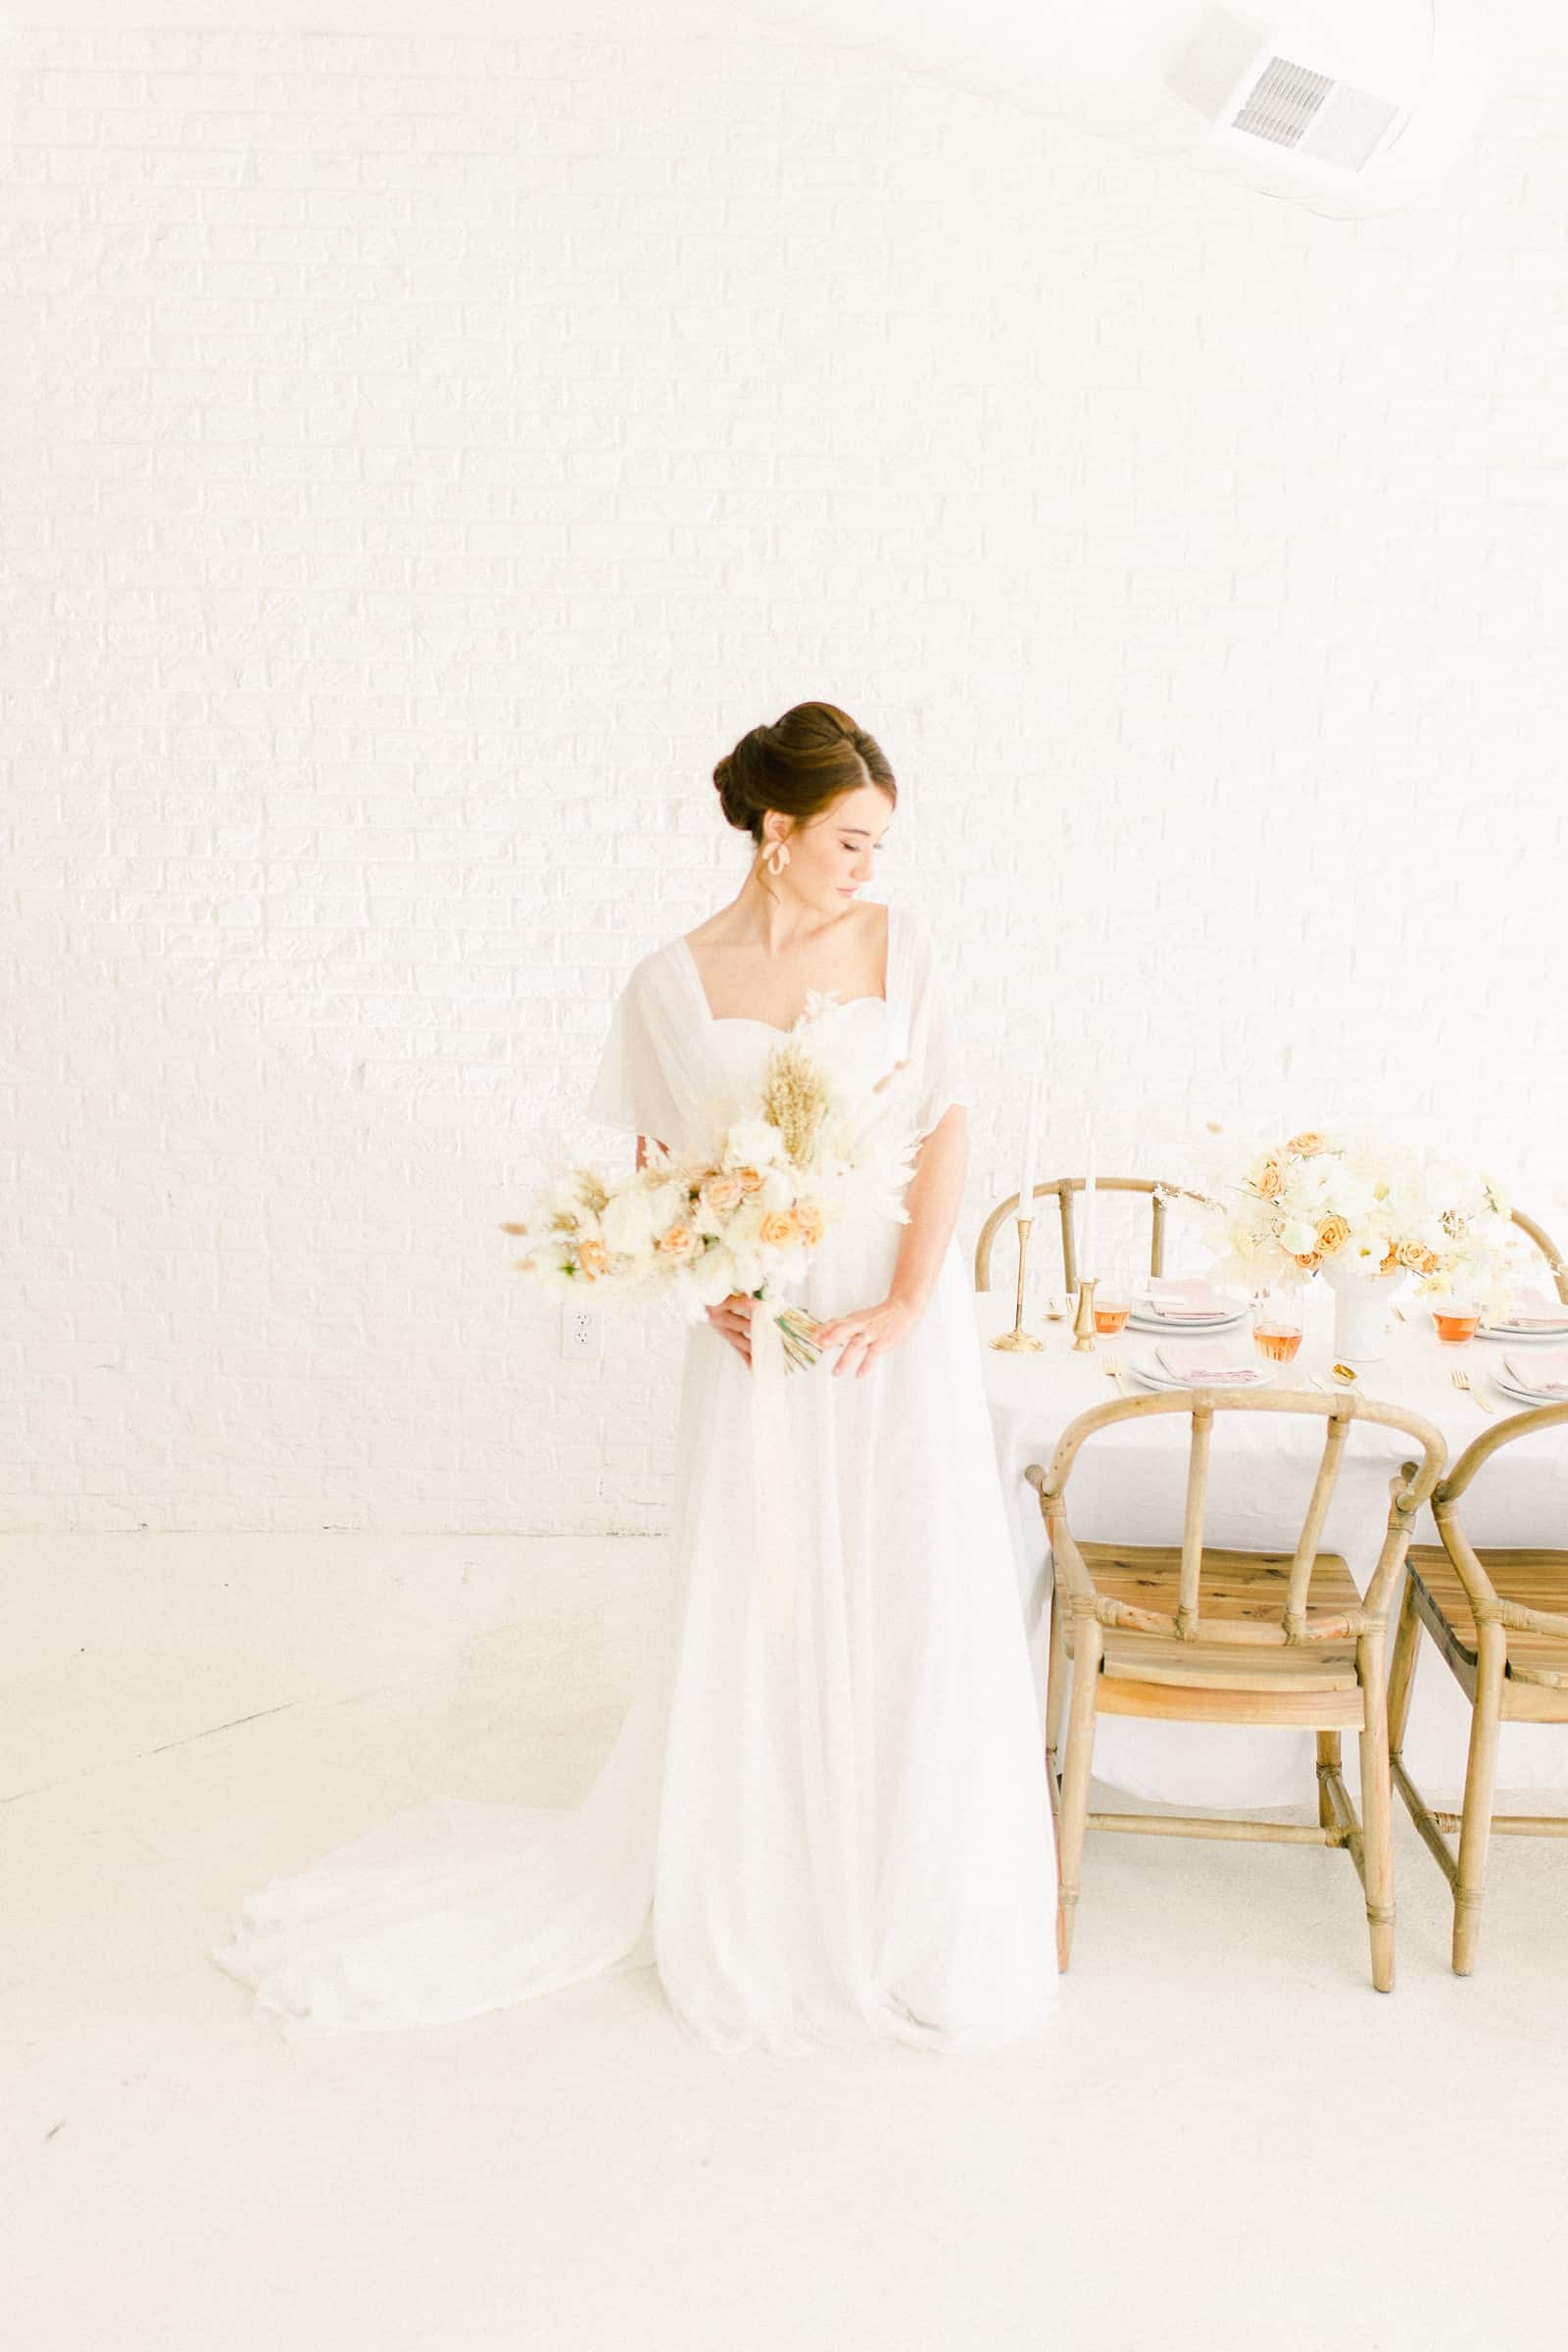 Bride standing next to Modern wedding table settings with white tablecloth and neutral colors